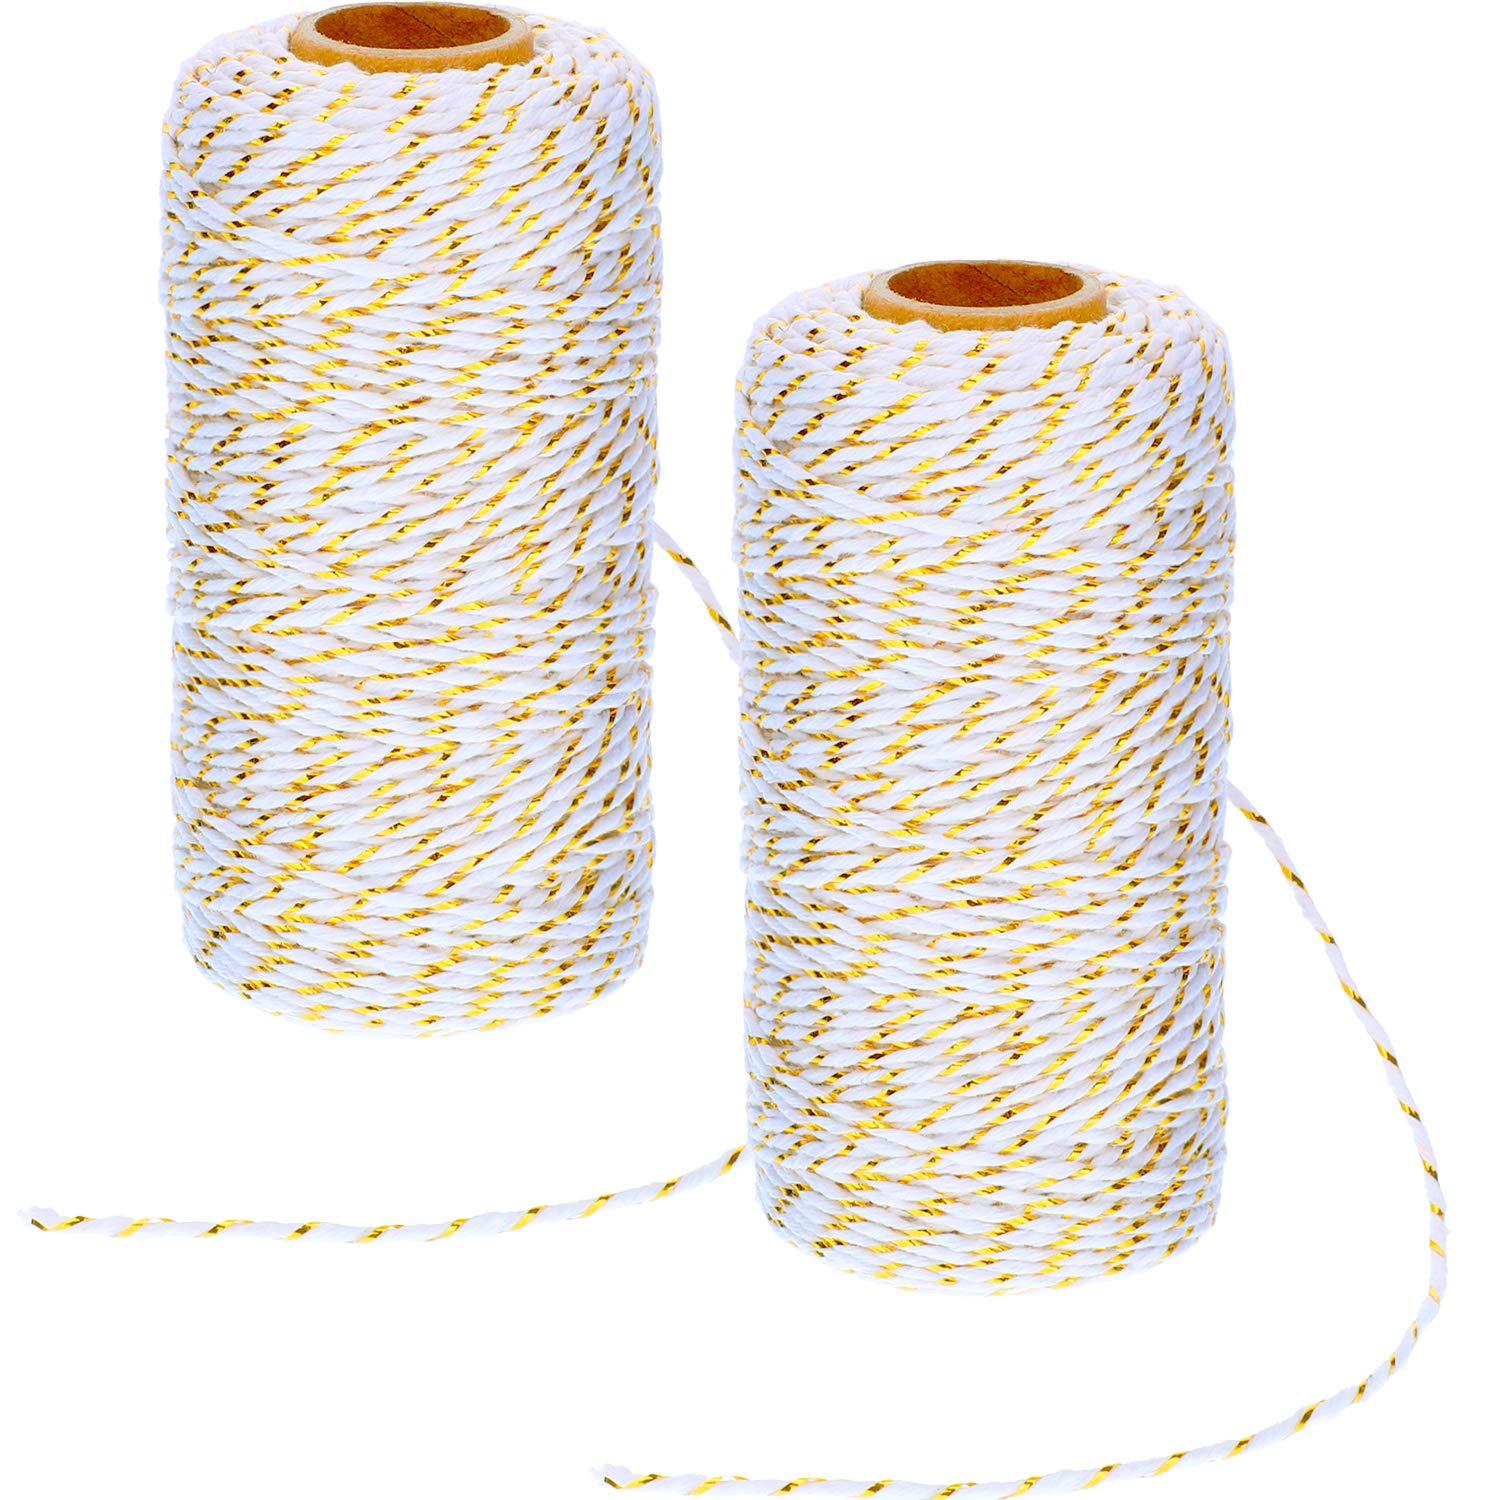 Pangda 2 Rolls Christmas Twine 2 mm Gift Wrapping Twine Cotton Bakers Twine with Gold Wire for Christmas DIY Party Supplies, 656 Feet Totally (Red/Green)